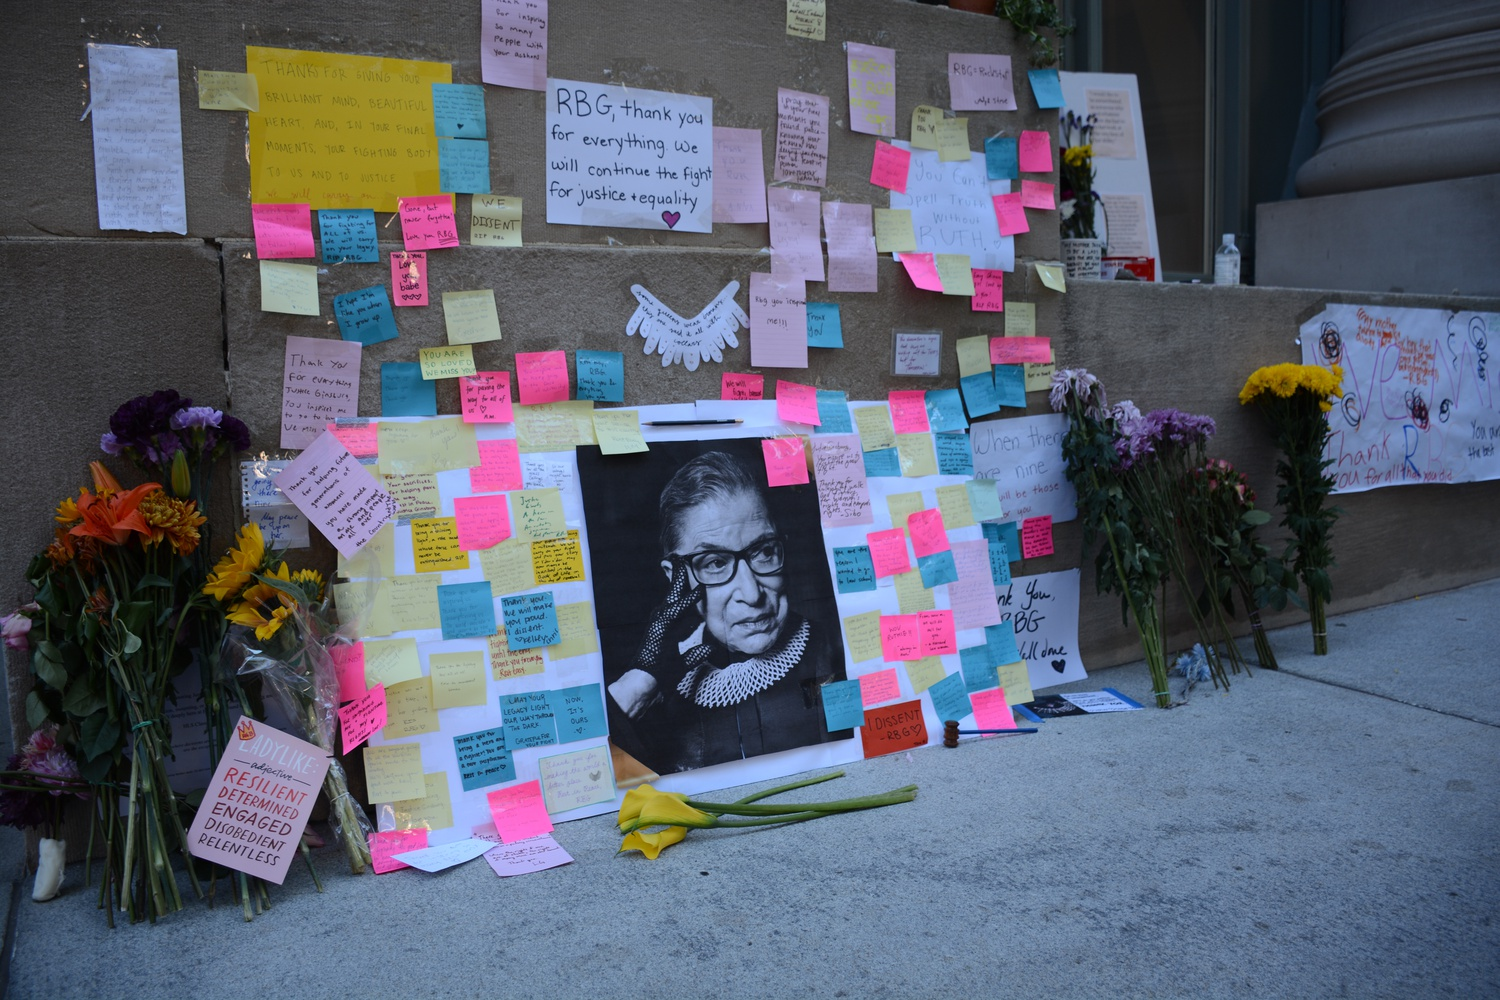 A memorial to Supreme Court Justice Ruth Bader Ginsburg, a Harvard Law School alumna, sprung up at the Law School this week after Ginsburg's death at the age of 87 Friday.